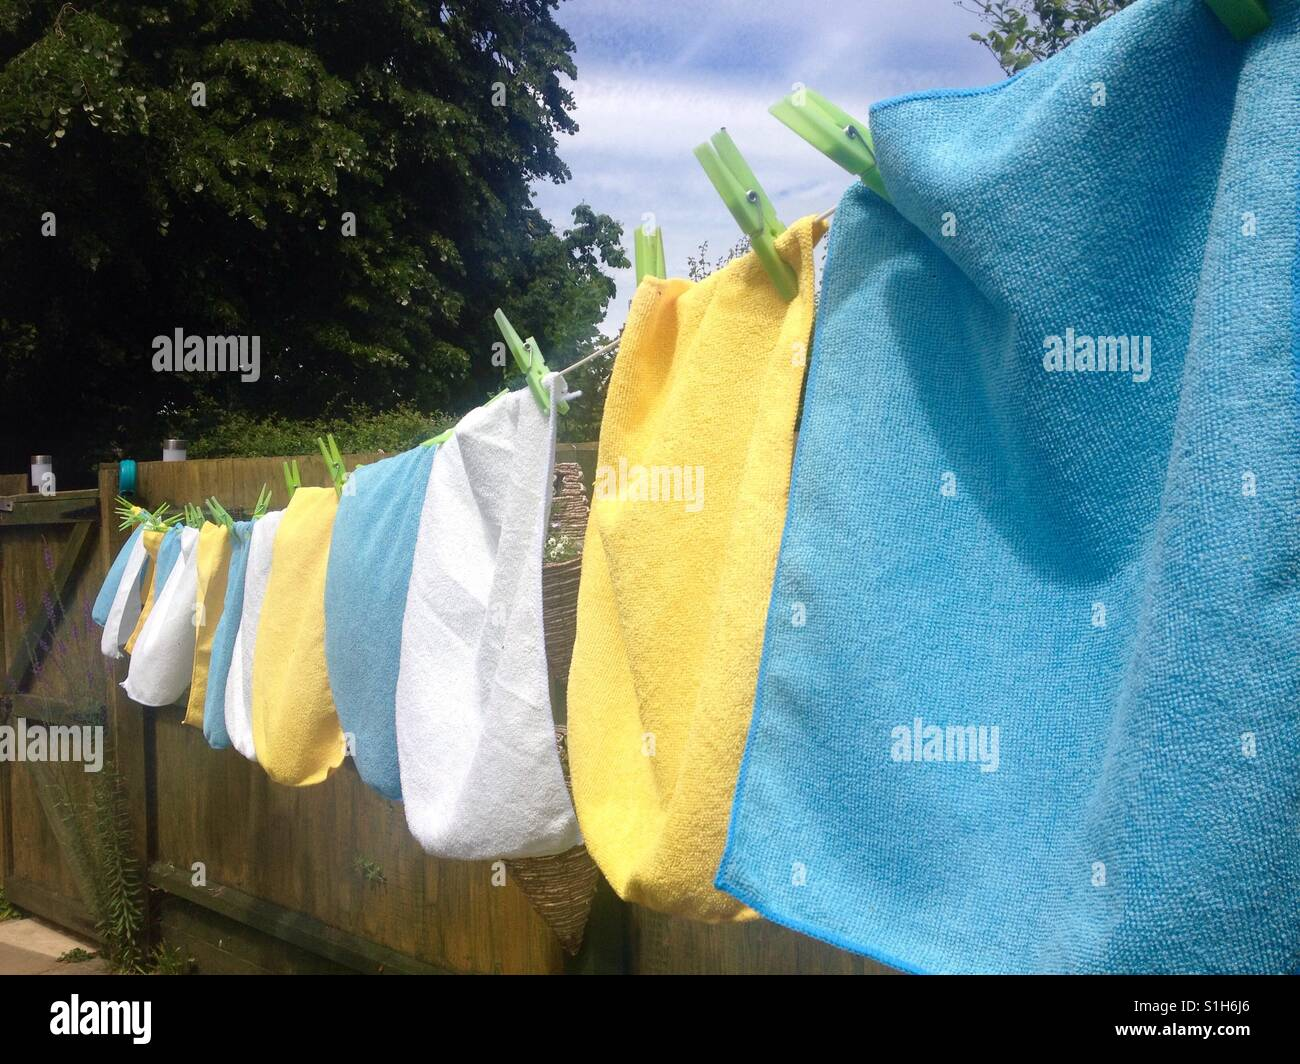 Washing line full of colour. Pegged out in the summer sunshine. - Stock Image